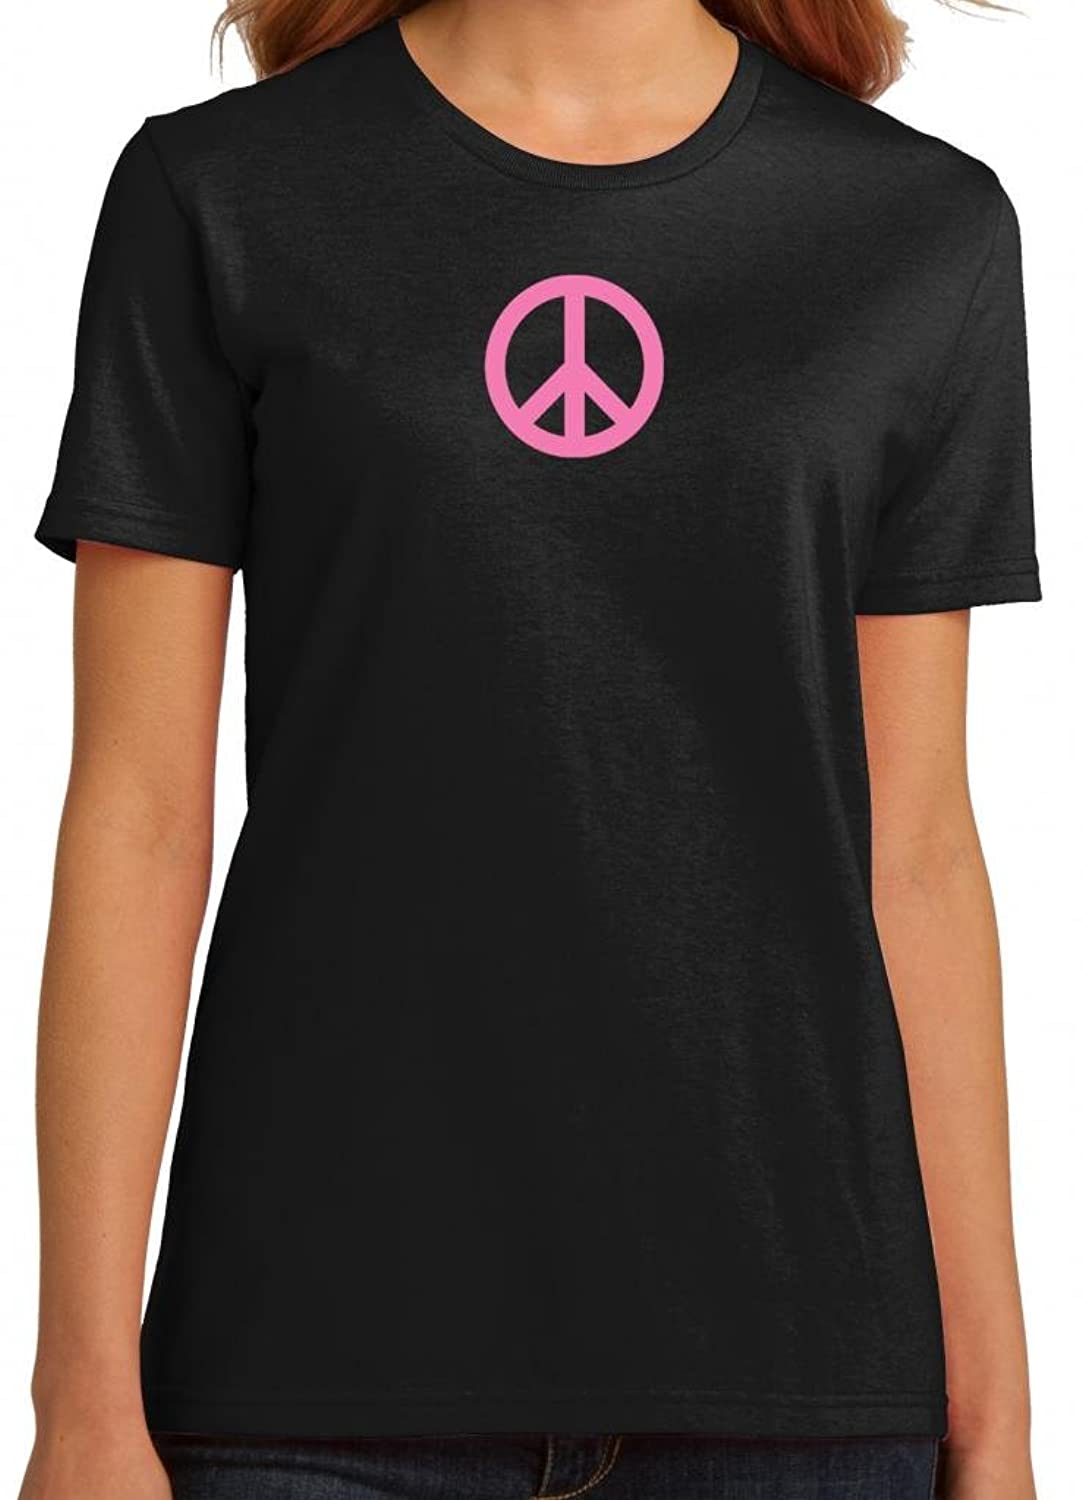 Yoga Clothing For You Ladies 100% Organic Cotton Pink Peace Sign Tee Shirt